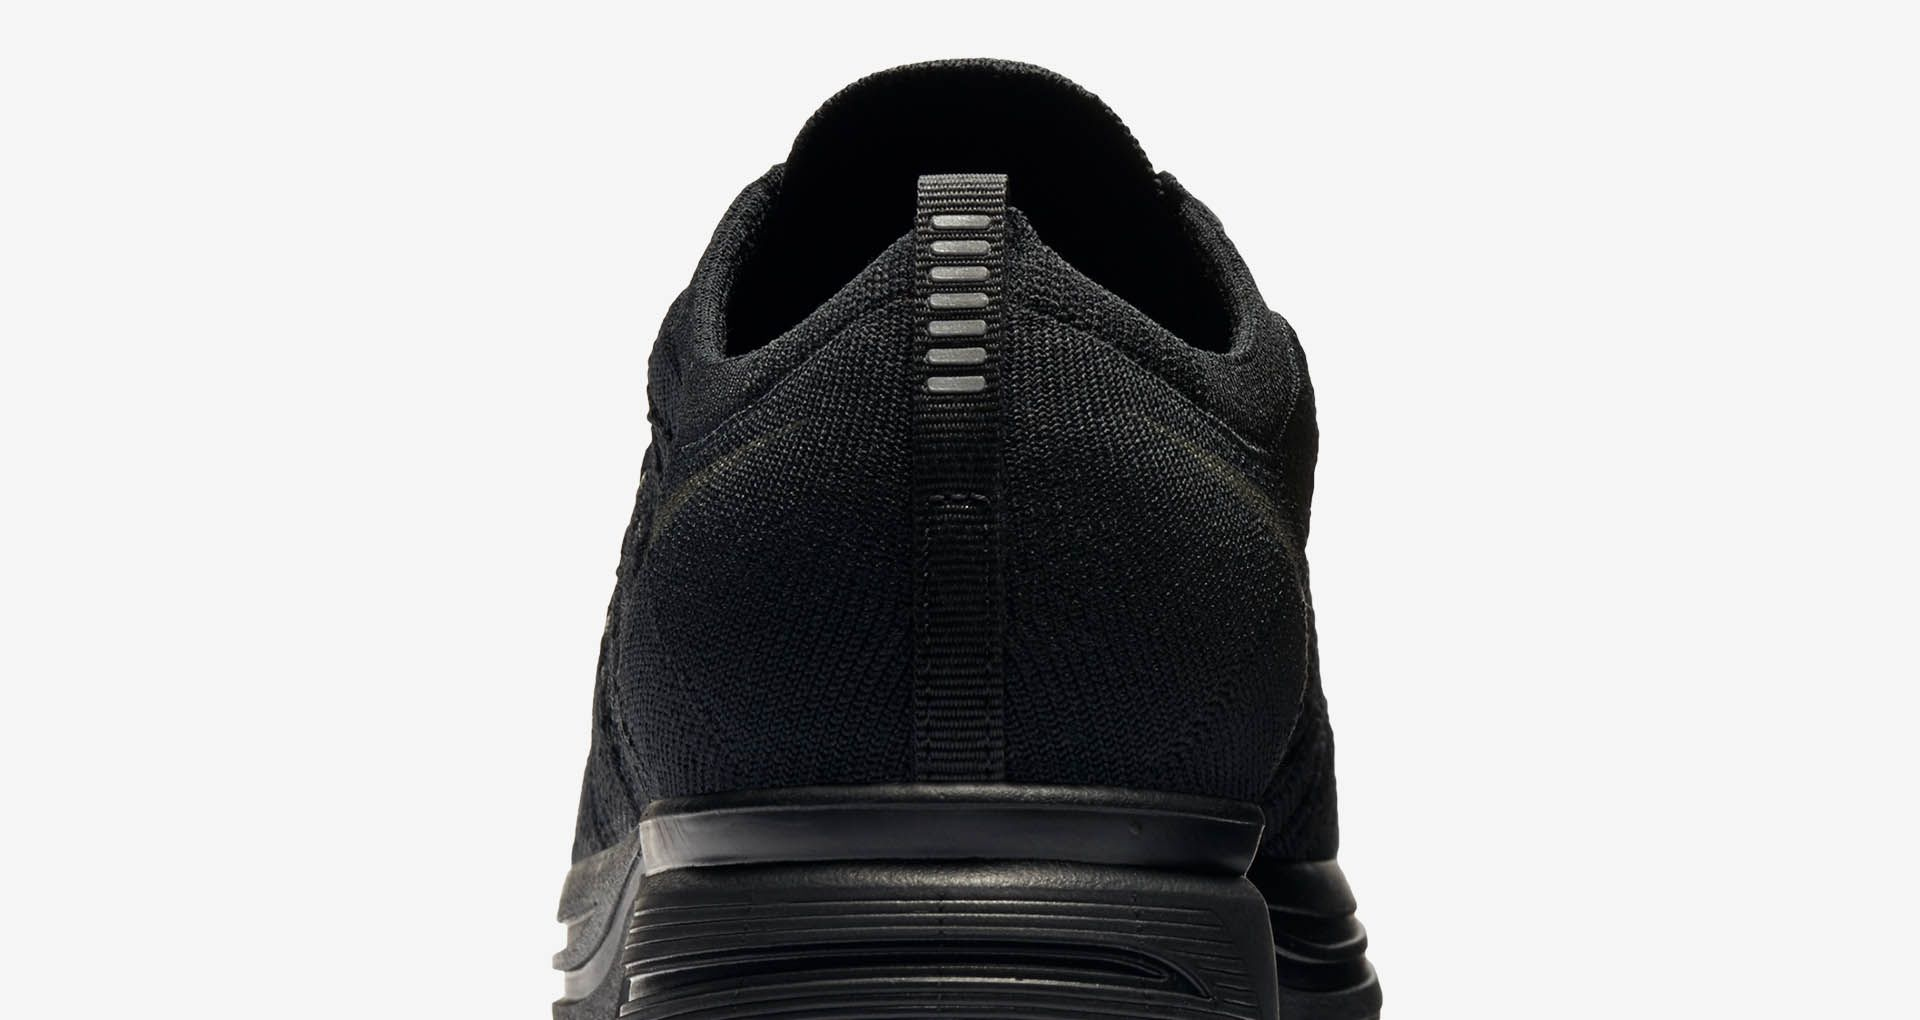 f94dd684ba51 Nike Flyknit Trainer  Black   Anthracite  Release Date. Nike+ SNKRS